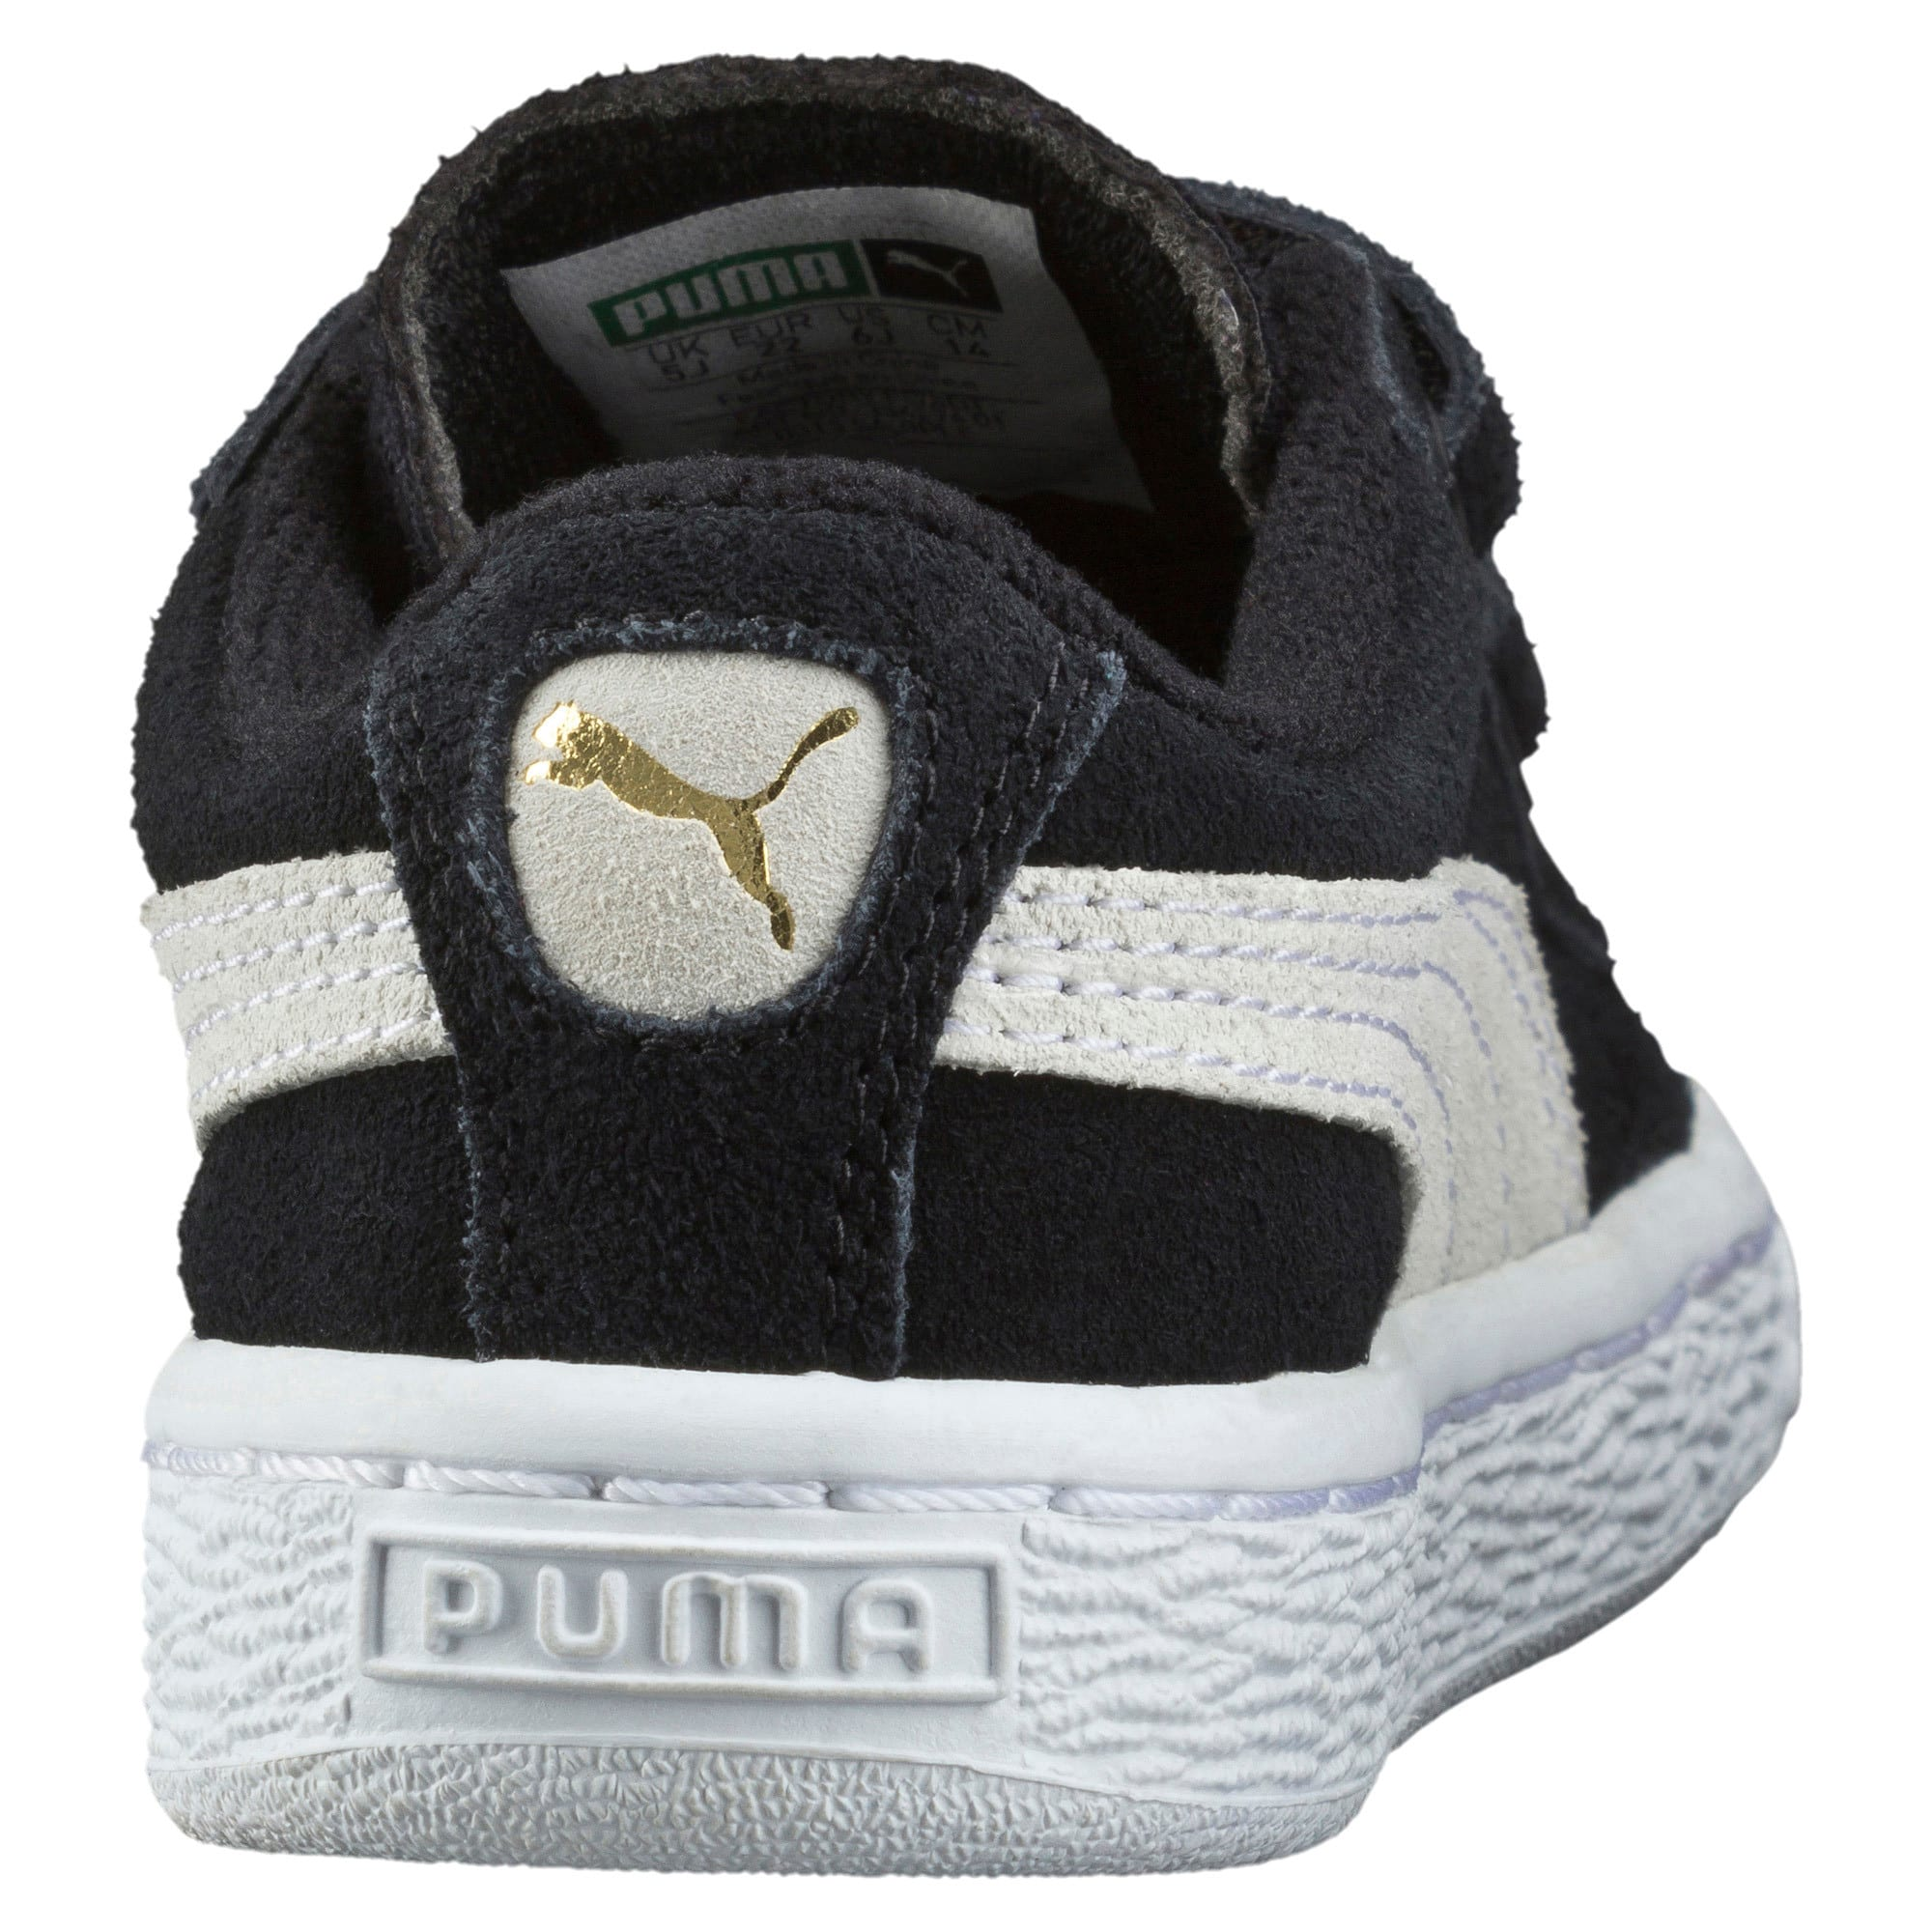 Thumbnail 3 of Suede sneakers voor kinderen, Puma Black-Puma White, medium